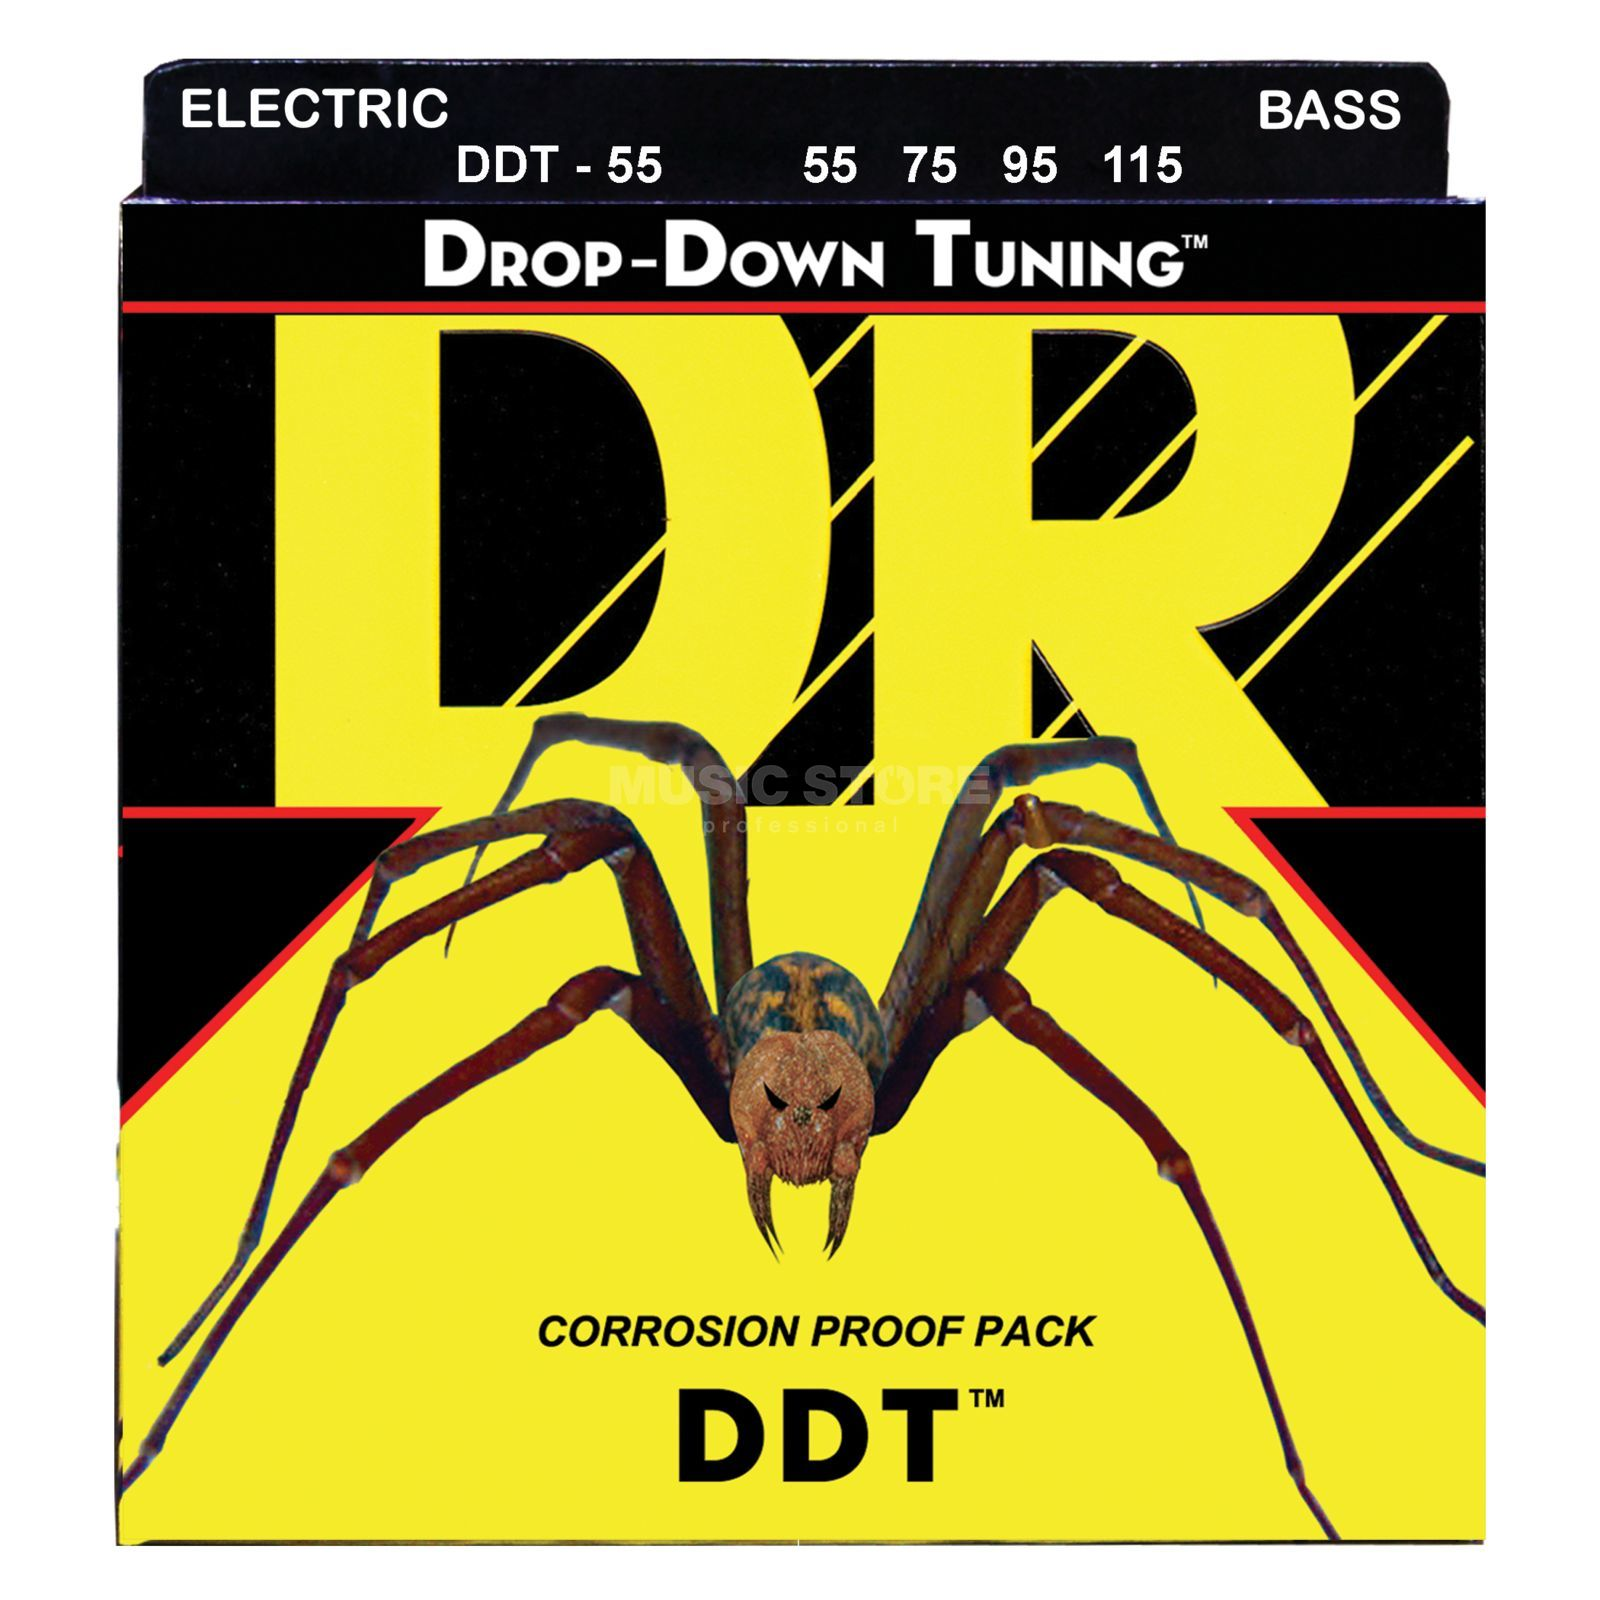 DR 4er Bass 55-115 Drop-Down Tuning DDT-55 Produktbild